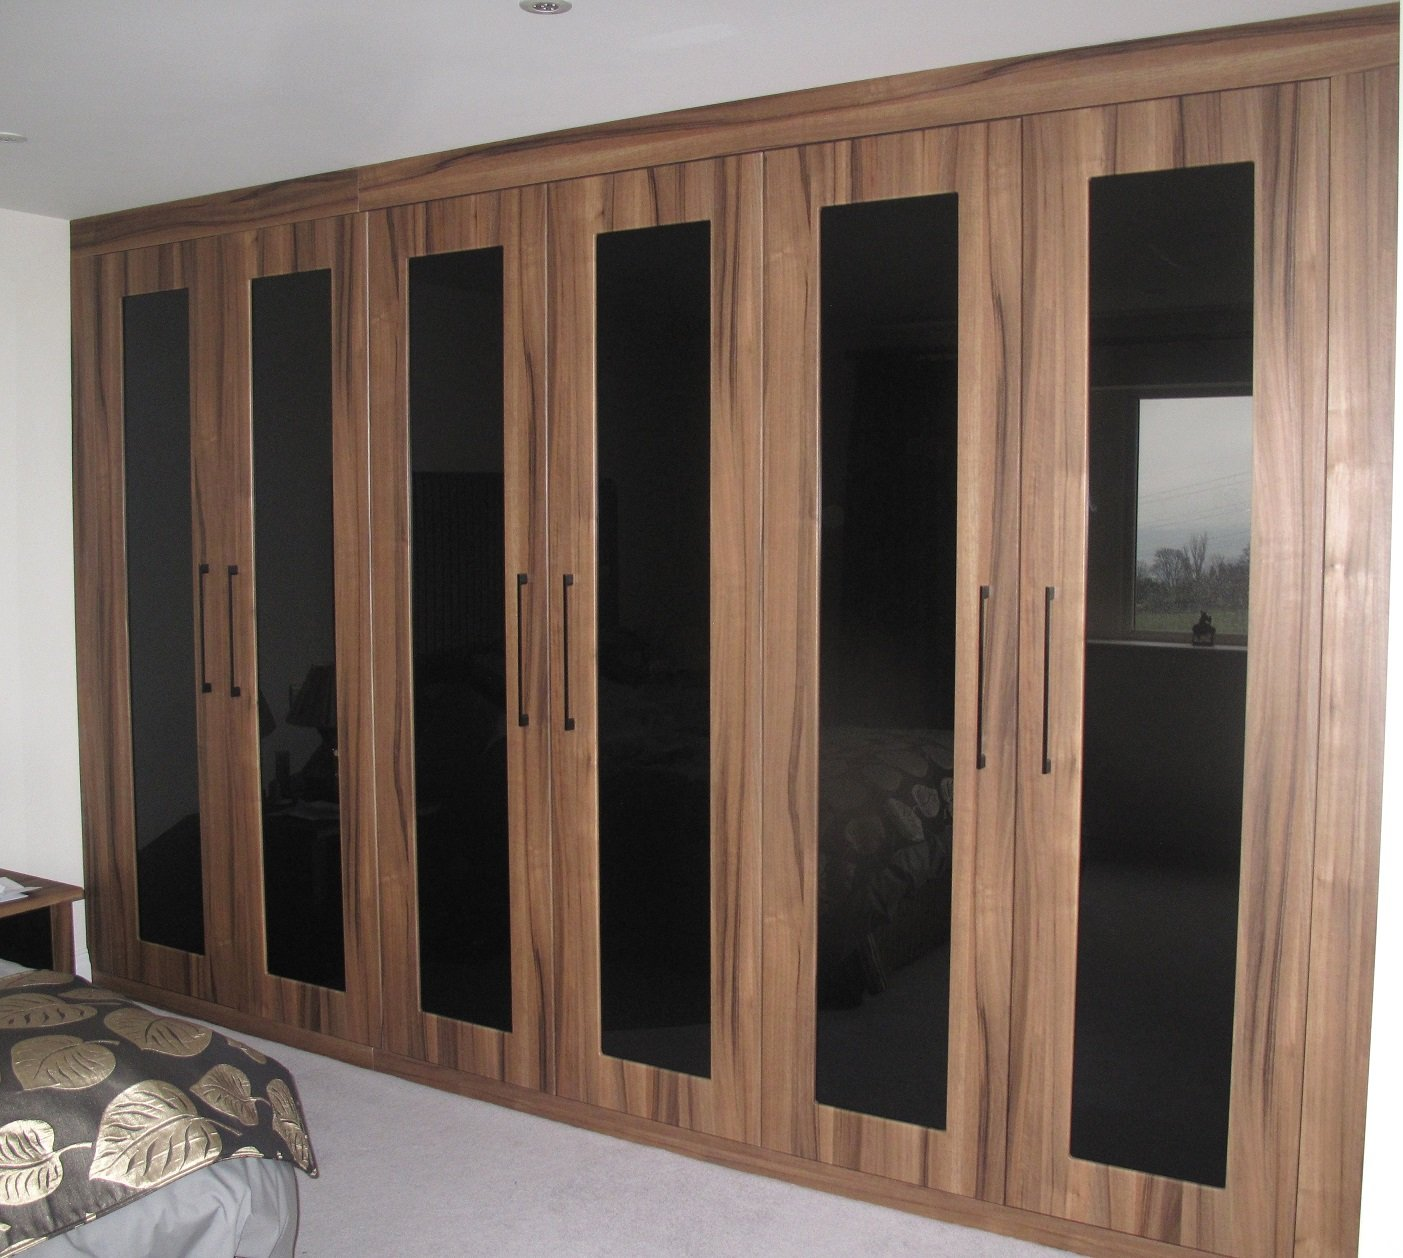 Black Glass with Wood Effect Fitted Wardrobe